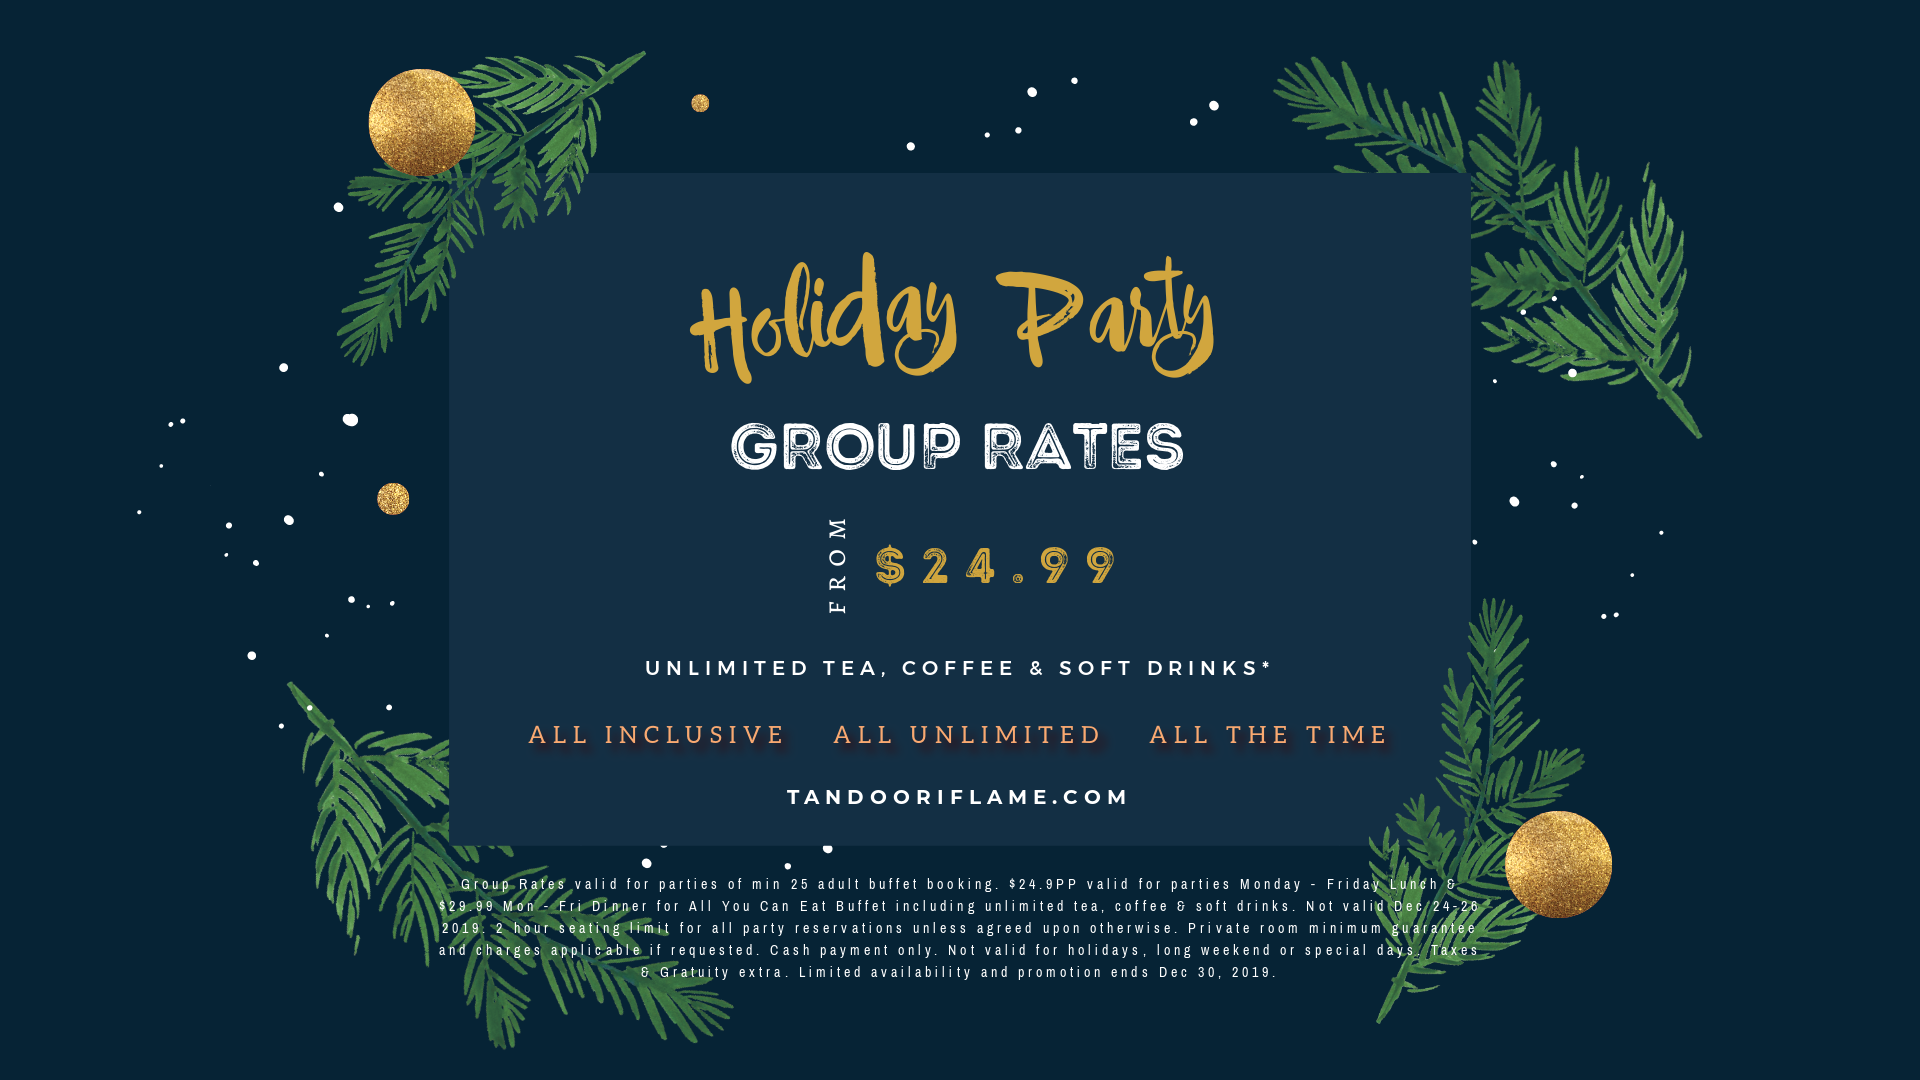 Merry_& Bright Navy and Gold Christmas Party Promotion Graphic_custom-2